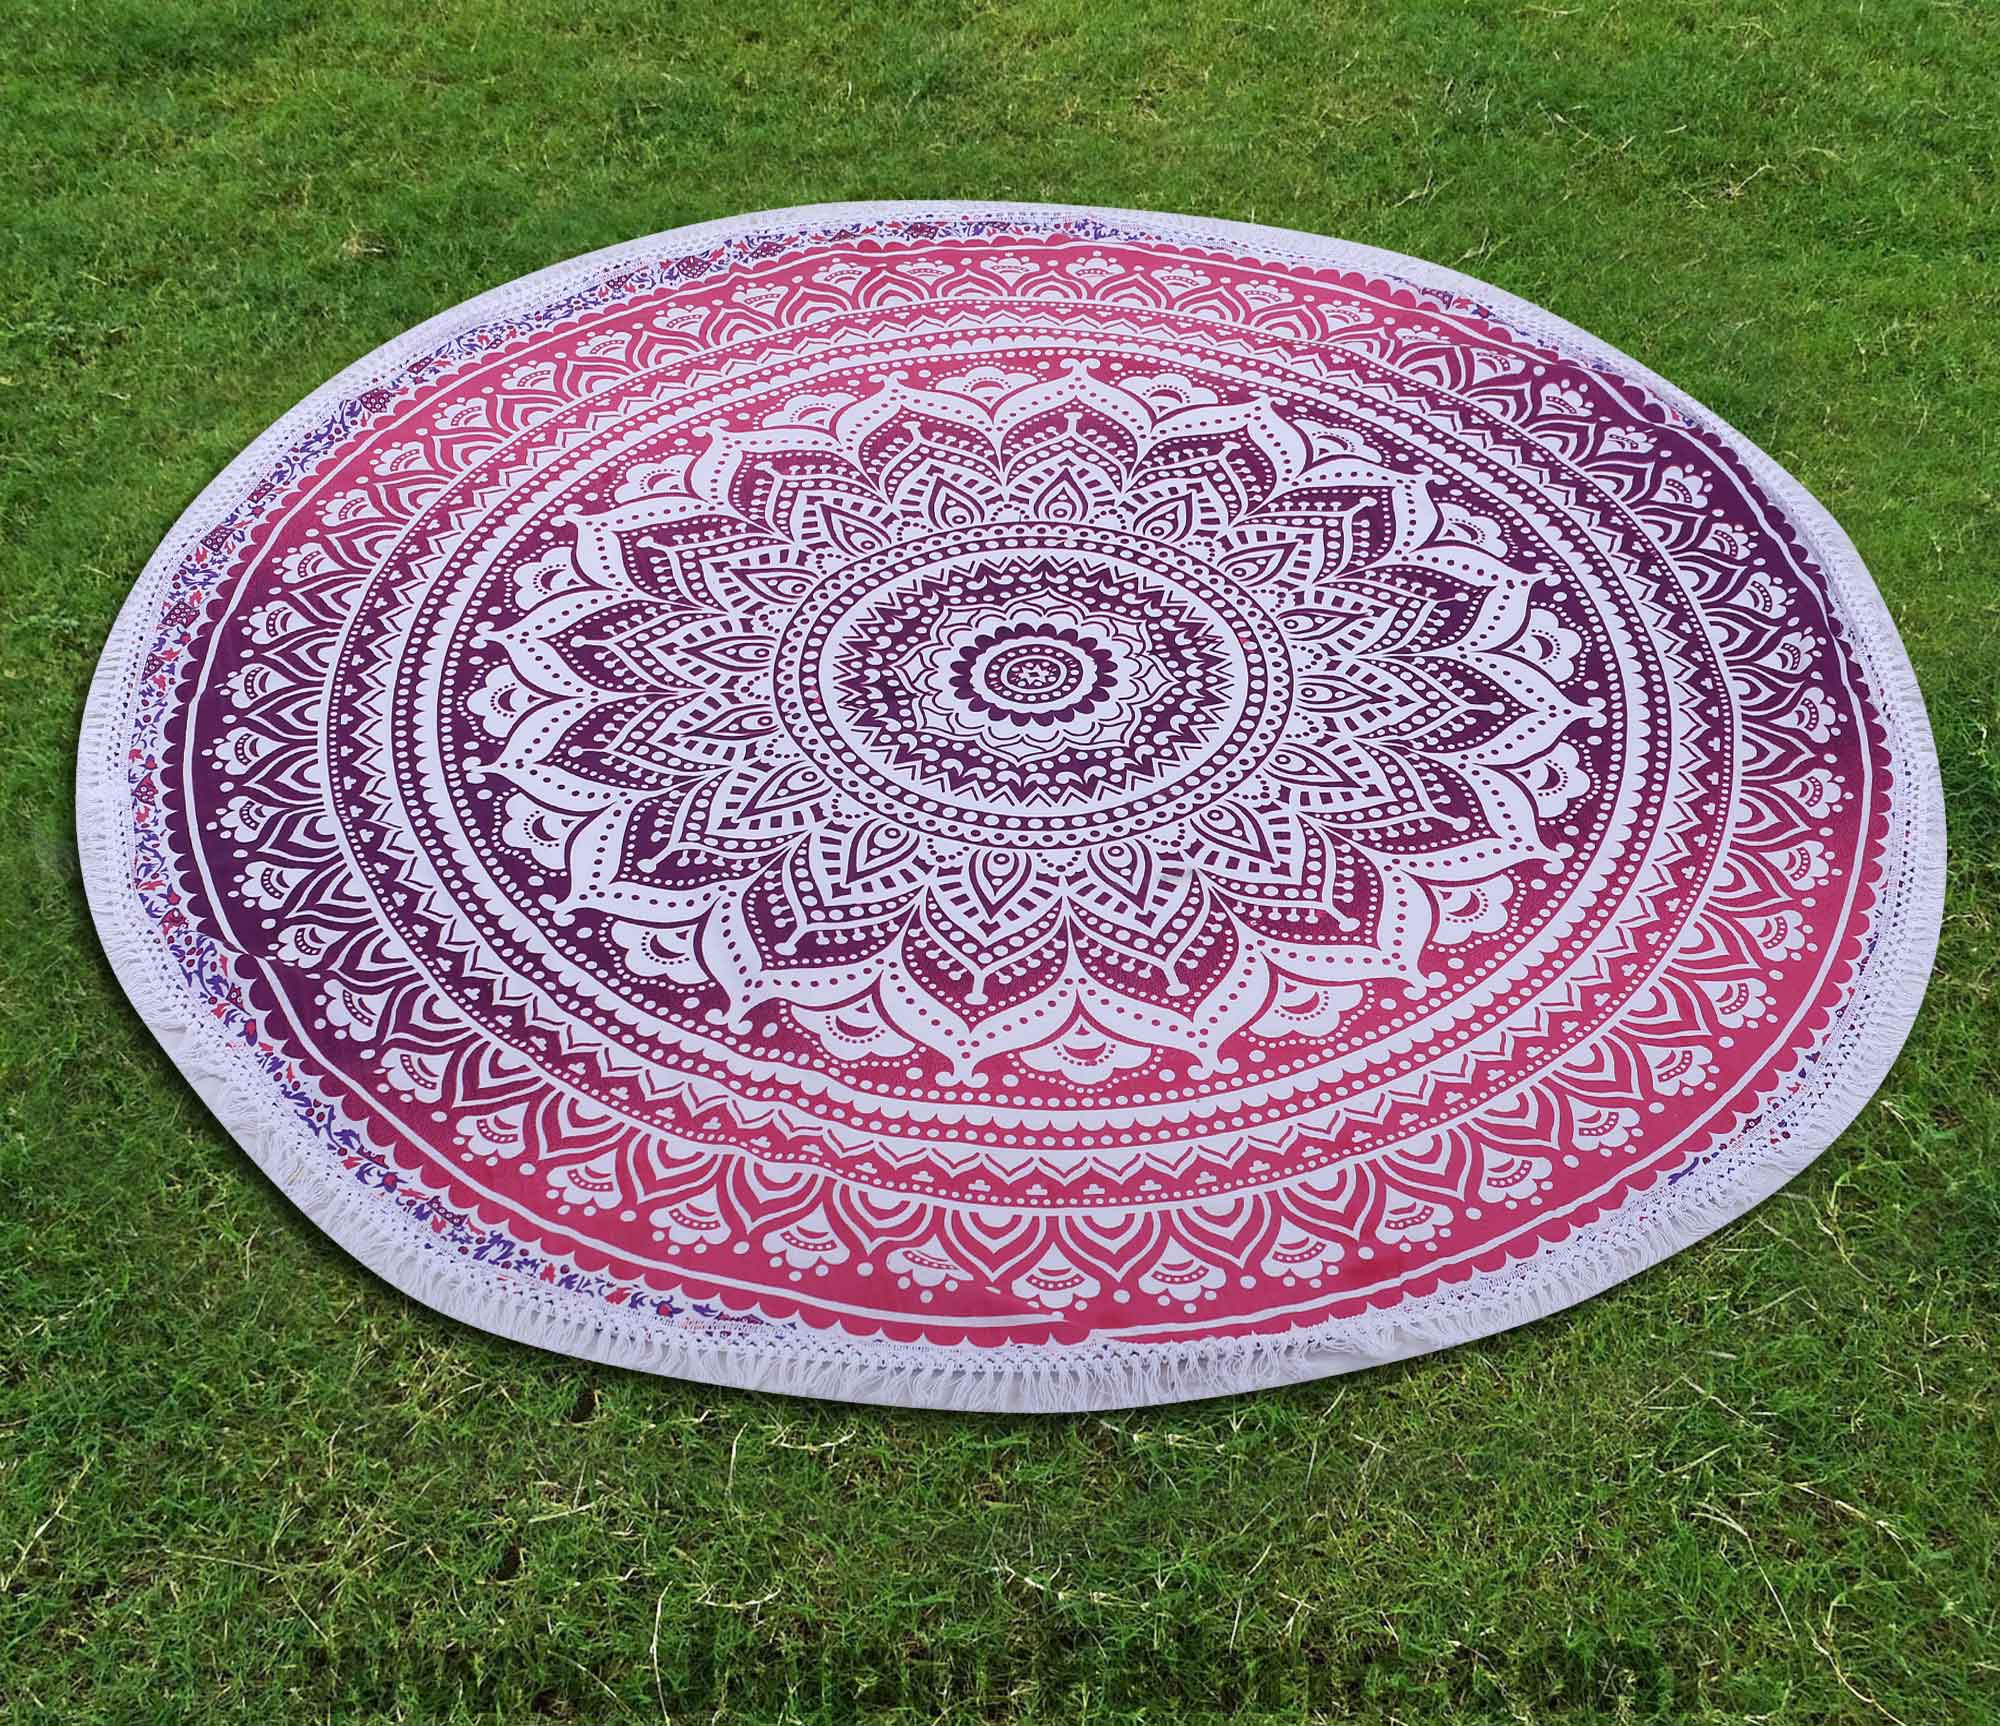 "Blue Ombre Mandala Printed Wall Hanging Round Roundies Beach Throw Cotton Yoga Mat Table Cloths Table Cover Picnic Mat Tapestry Picnic Blanket Mat 72"" by Handicraft-Palace"